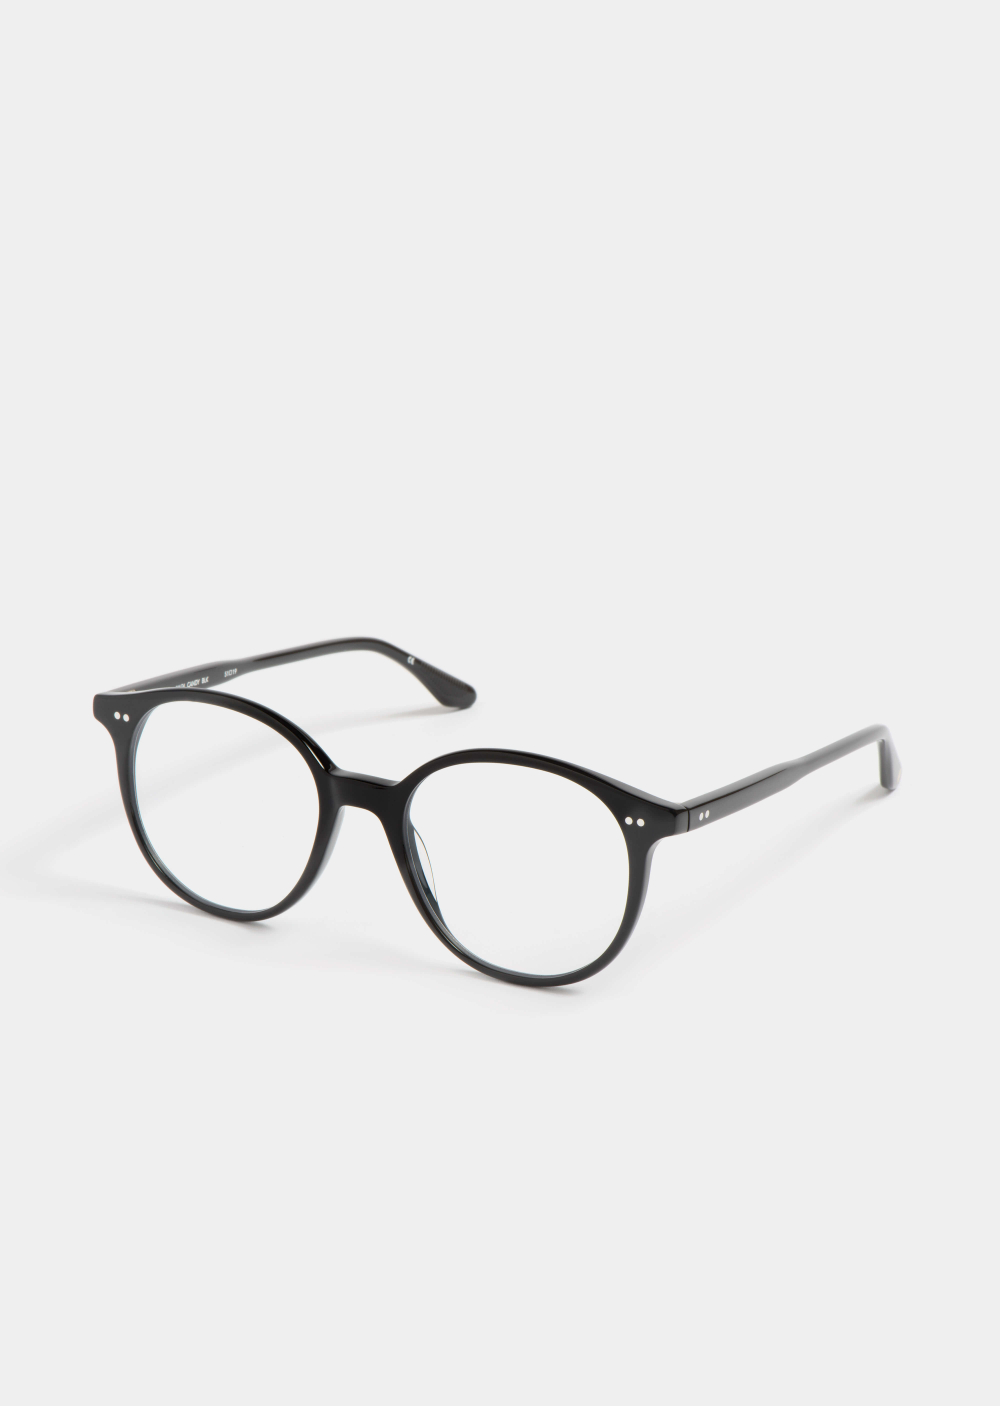 PETER AND MAY -  - LT4 Candy RX black